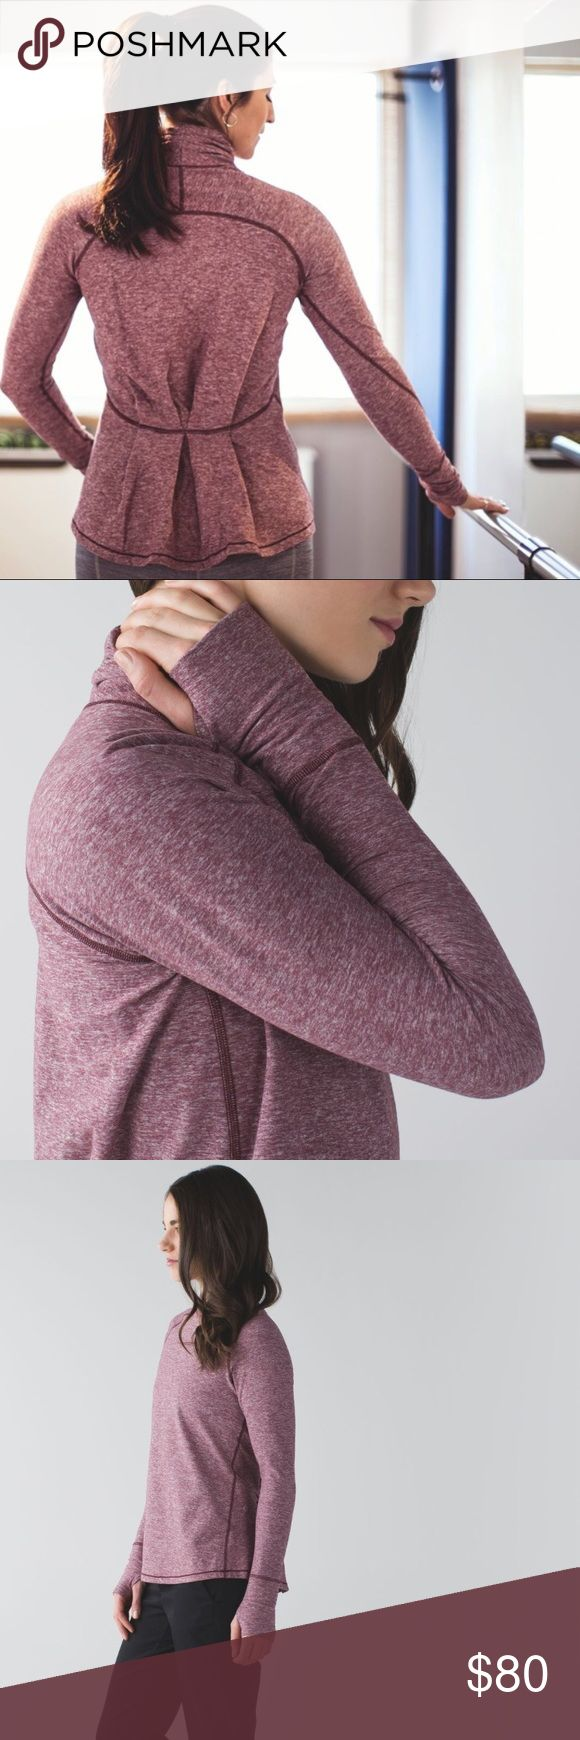 Lululemon Warm Your Core Long Sleeve Size 6 Perfect condition. Heathered Bordeaux Drama. Pleated back. Very flattering and stylish. Rulu fabric. Reasonable offers are always welcome! (offers less than 50% of listing price=automatic rejection) 🚫trades! I offer 20% off bundles of only 3+ items. NO OFFERS ON BUNDLES. Buy 4+ and get 25% off but you must contact me beforehand. All of my Lululemon items are smoke-free, free of defects, very well taken care of, washed & hung to dry (never thrown…